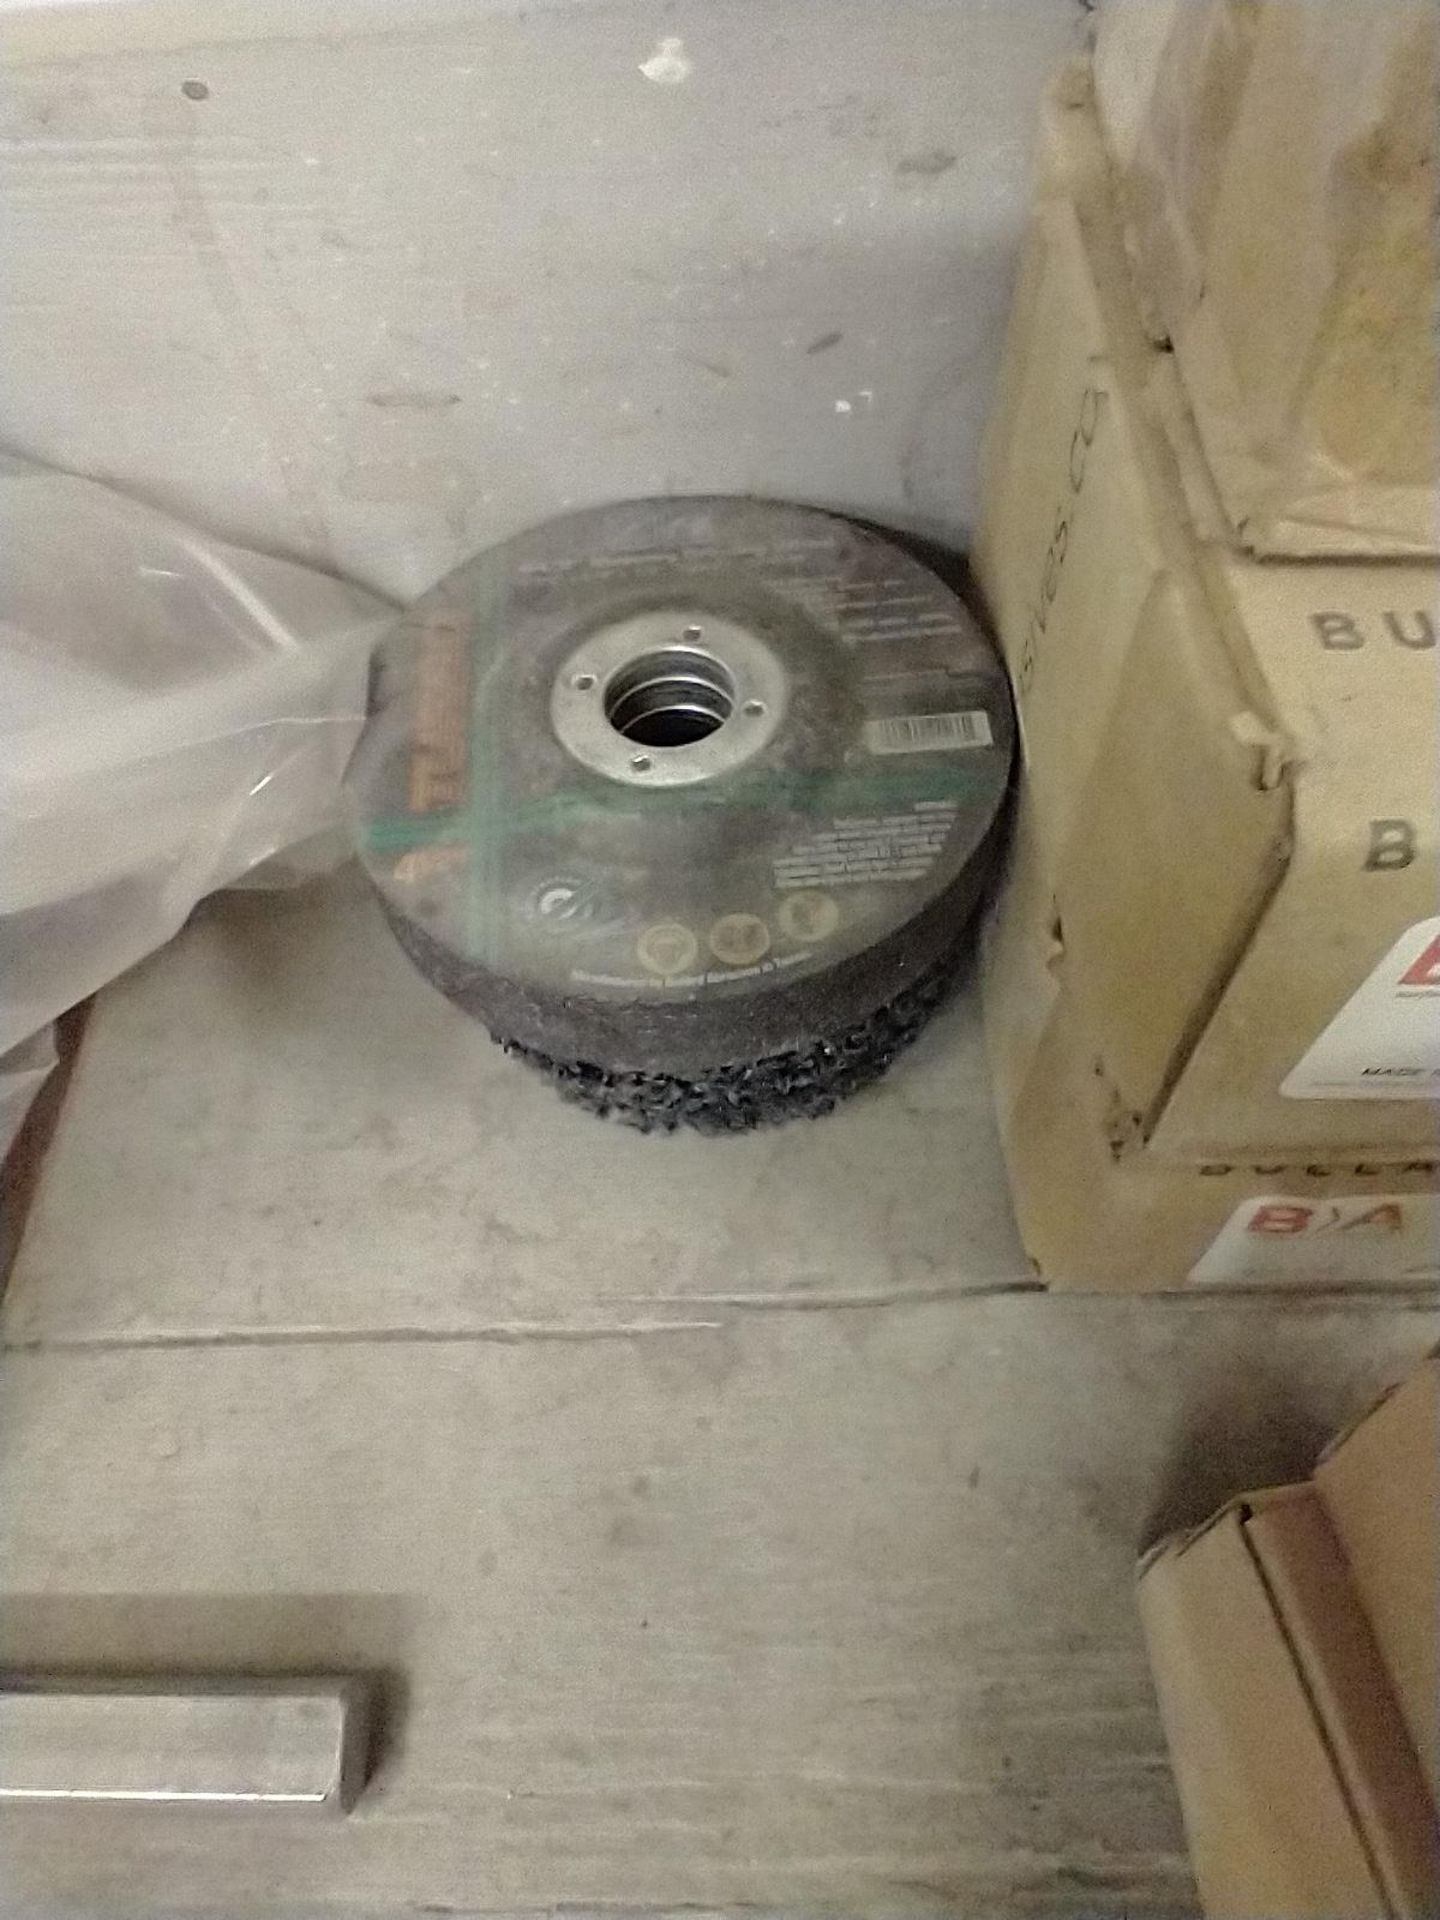 LOT OF ASSORTED CUT OFF WHEELS - Image 5 of 5